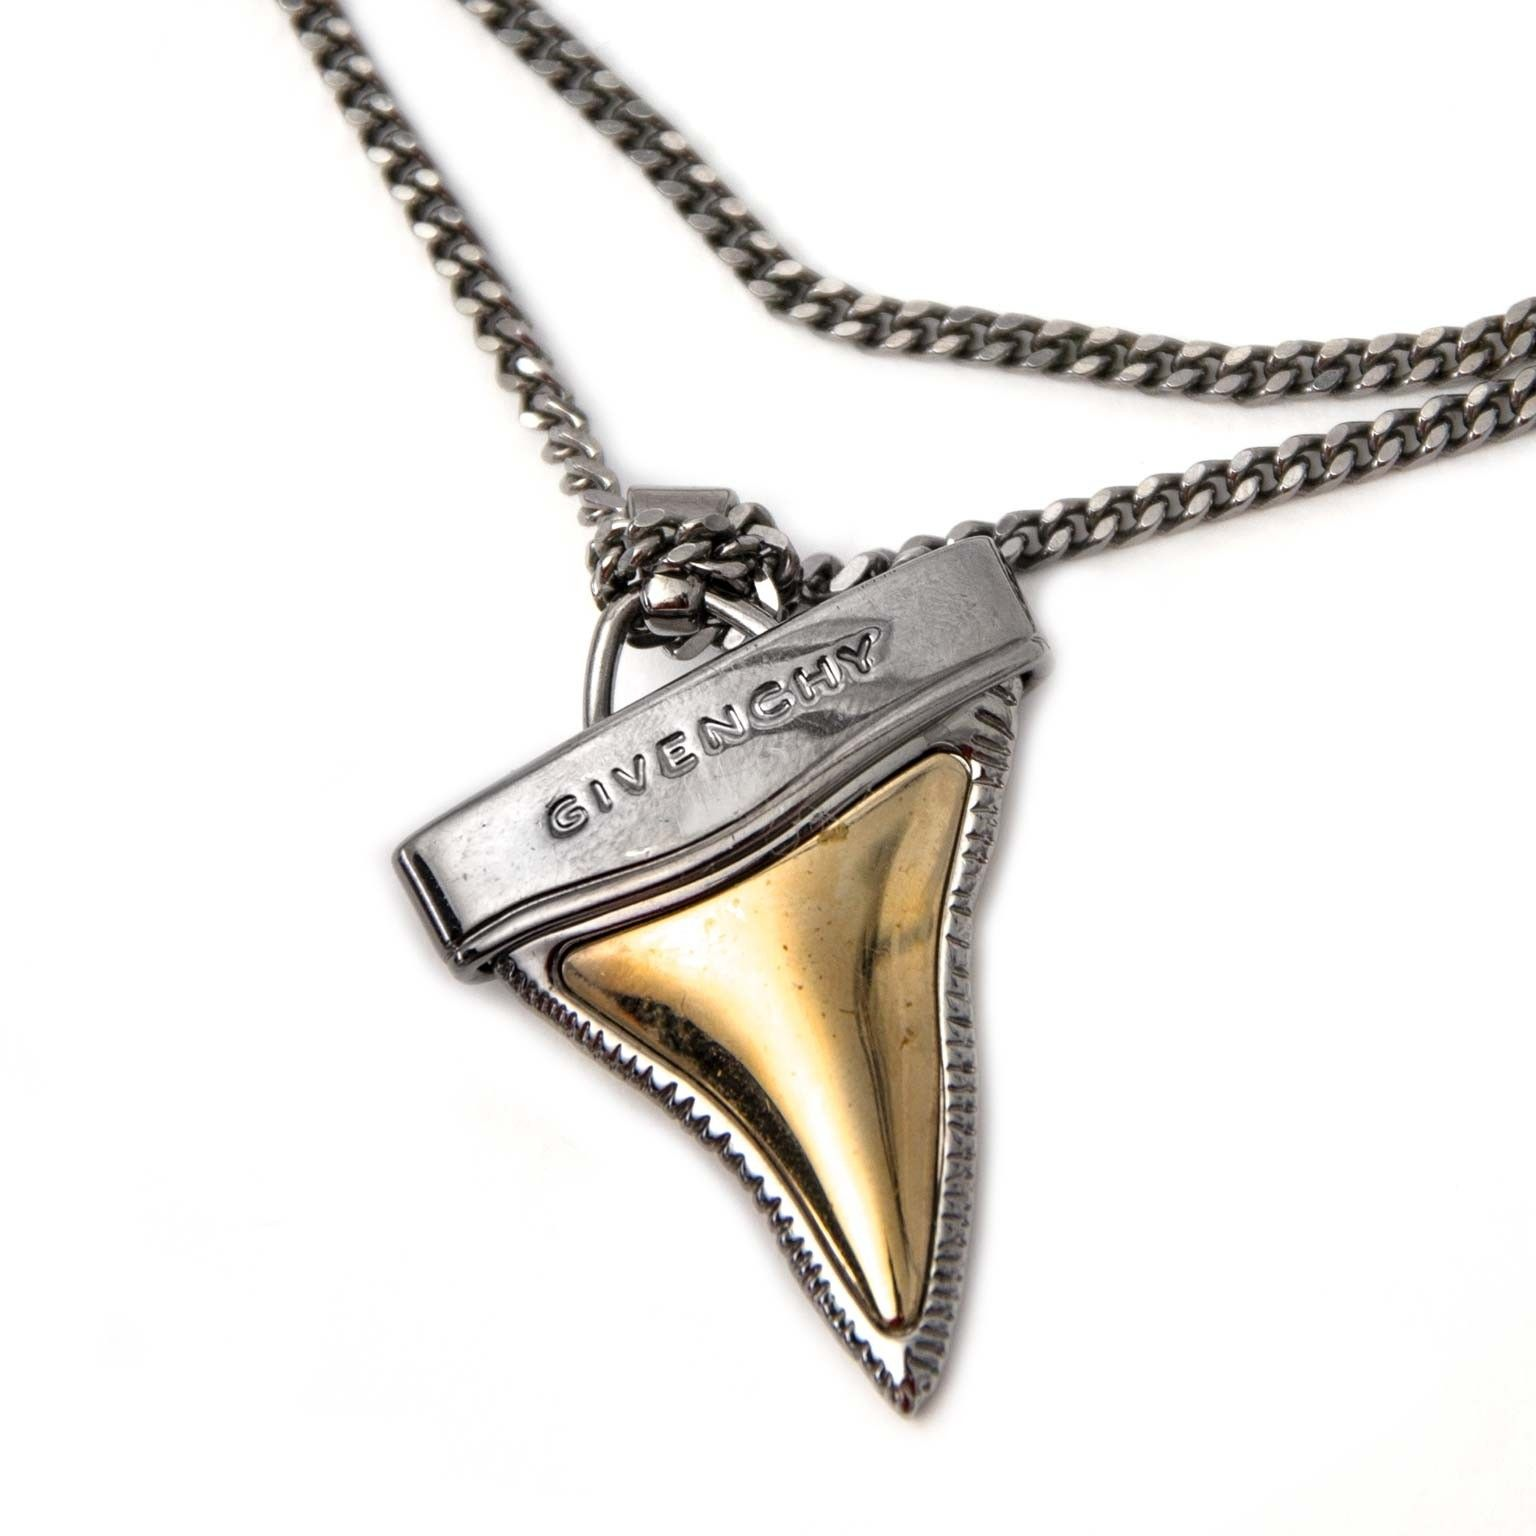 4aa60531501 Givenchy Shark Tooth Necklace Buy authentic designer Givenchy secondhand  necklace jewelry at Labellov at the best